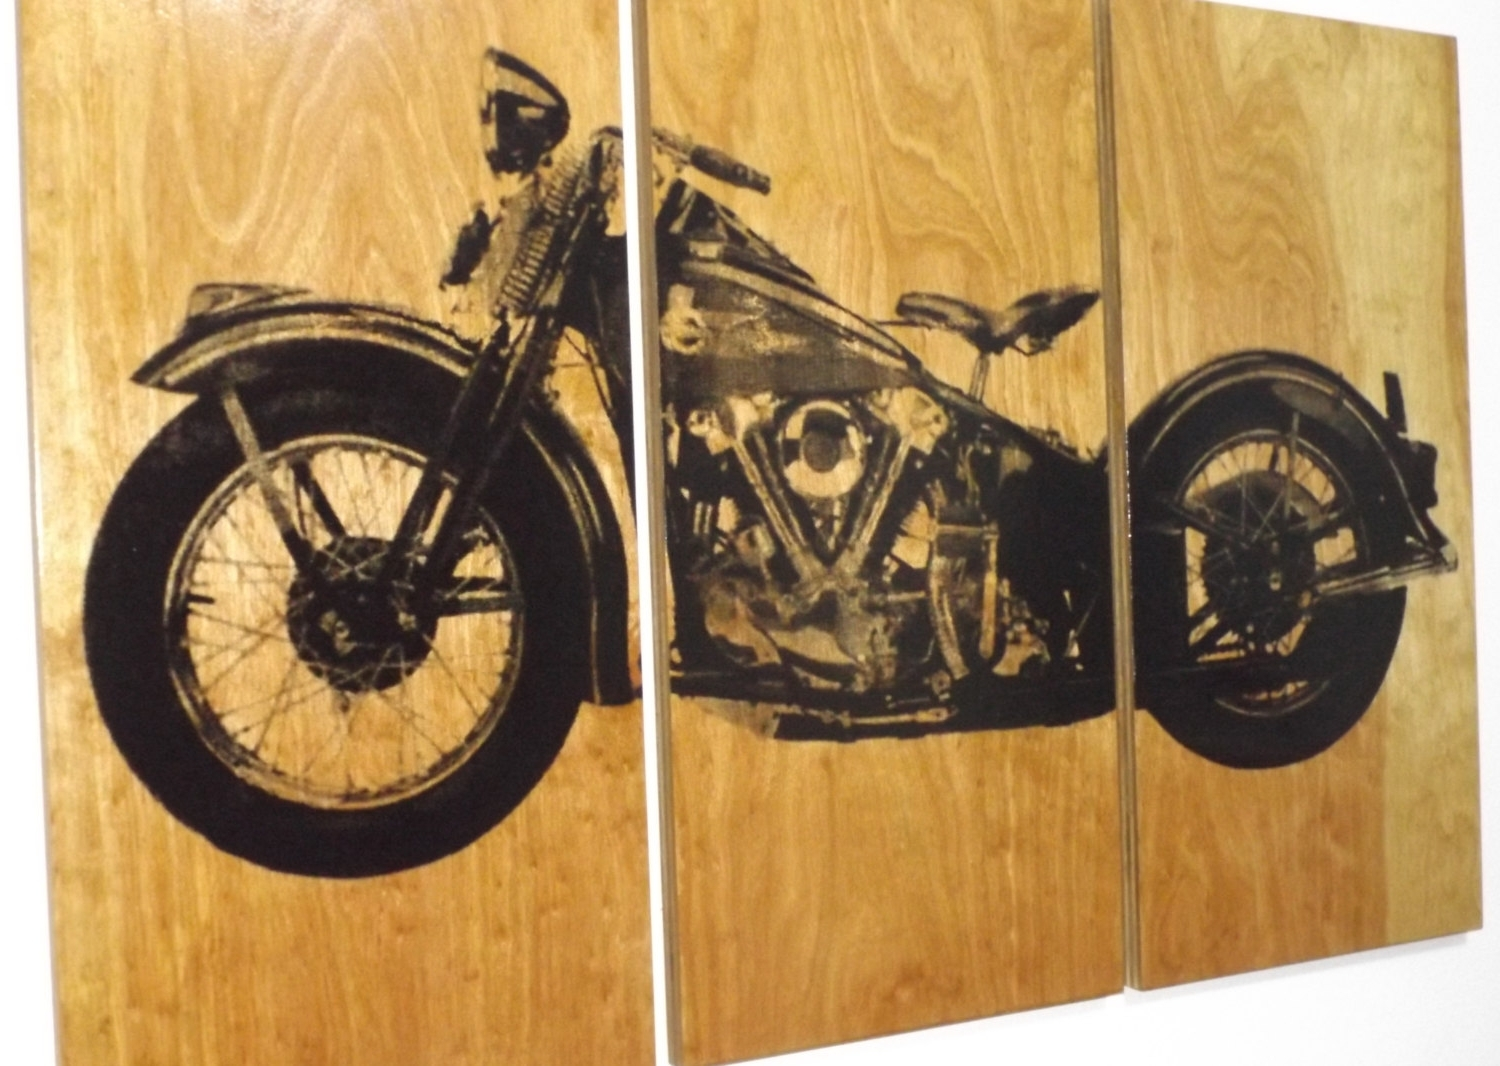 Patent Harley Motorcycle Poste Photo On Harley Davidson Wall Art With Regard To Widely Used Harley Davidson Wall Art (View 16 of 20)